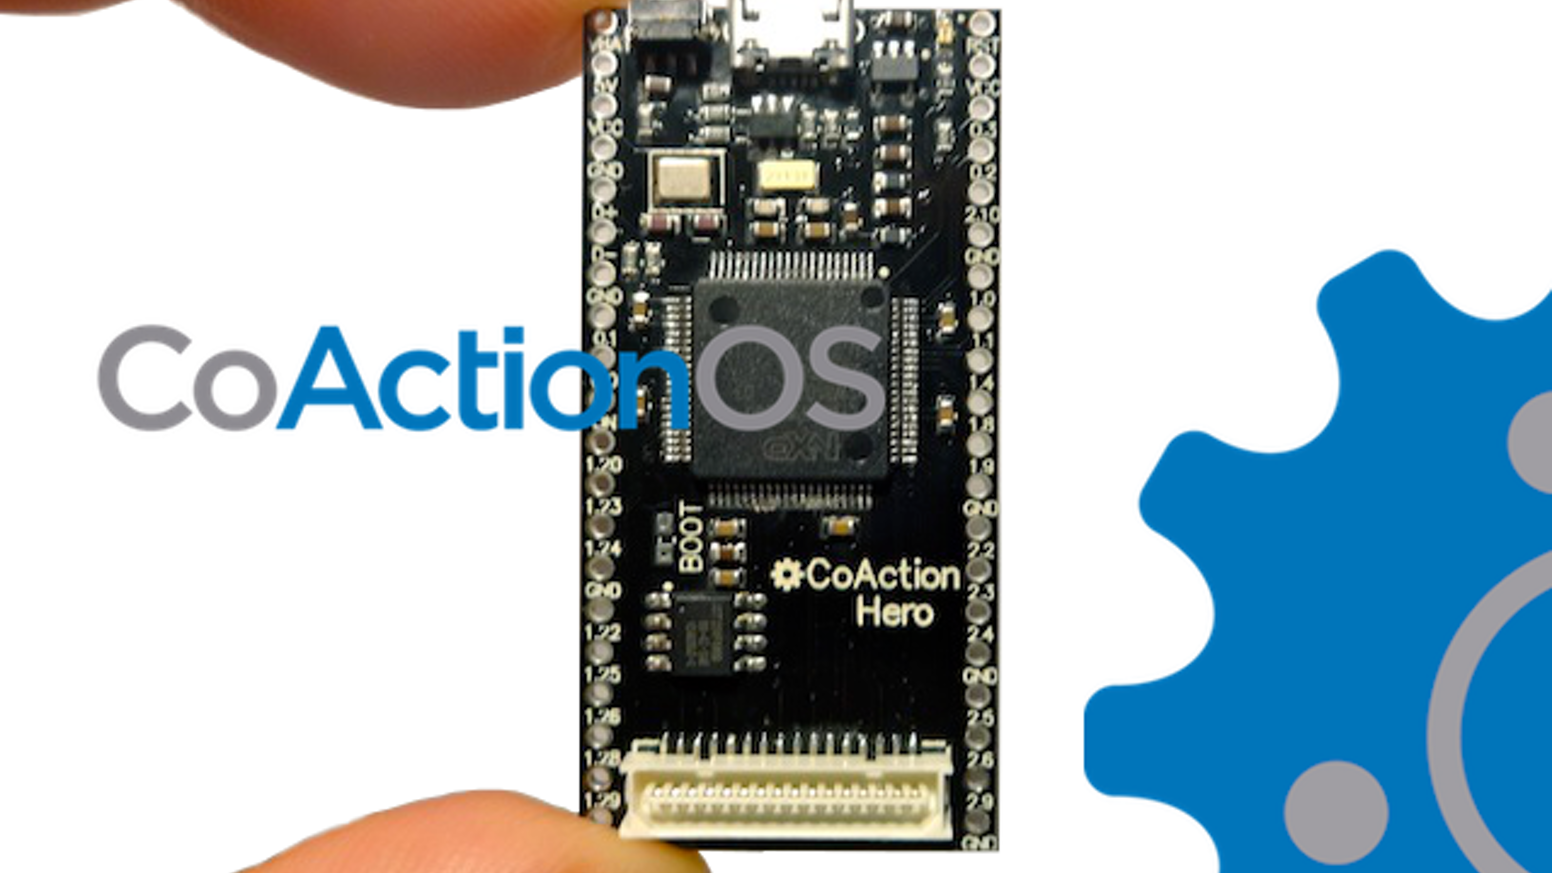 CoAction Hero: a powerful proto-board with a 120Mhz processor, 1MB filesystem, and built-in OS for tinkerers and engineers alike.